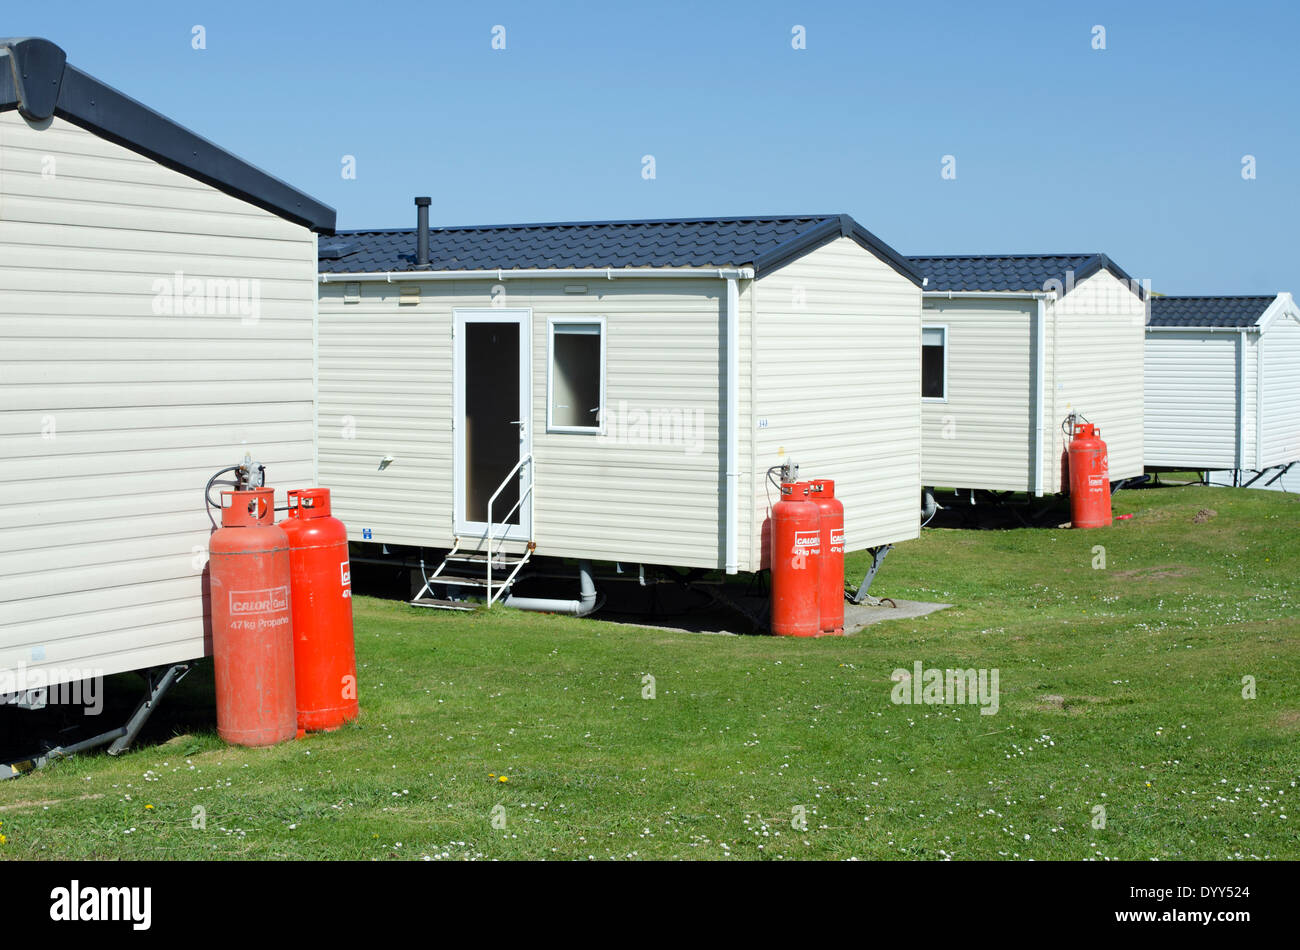 holiday caravans with propane gas bottles for fuel supply - Stock Image